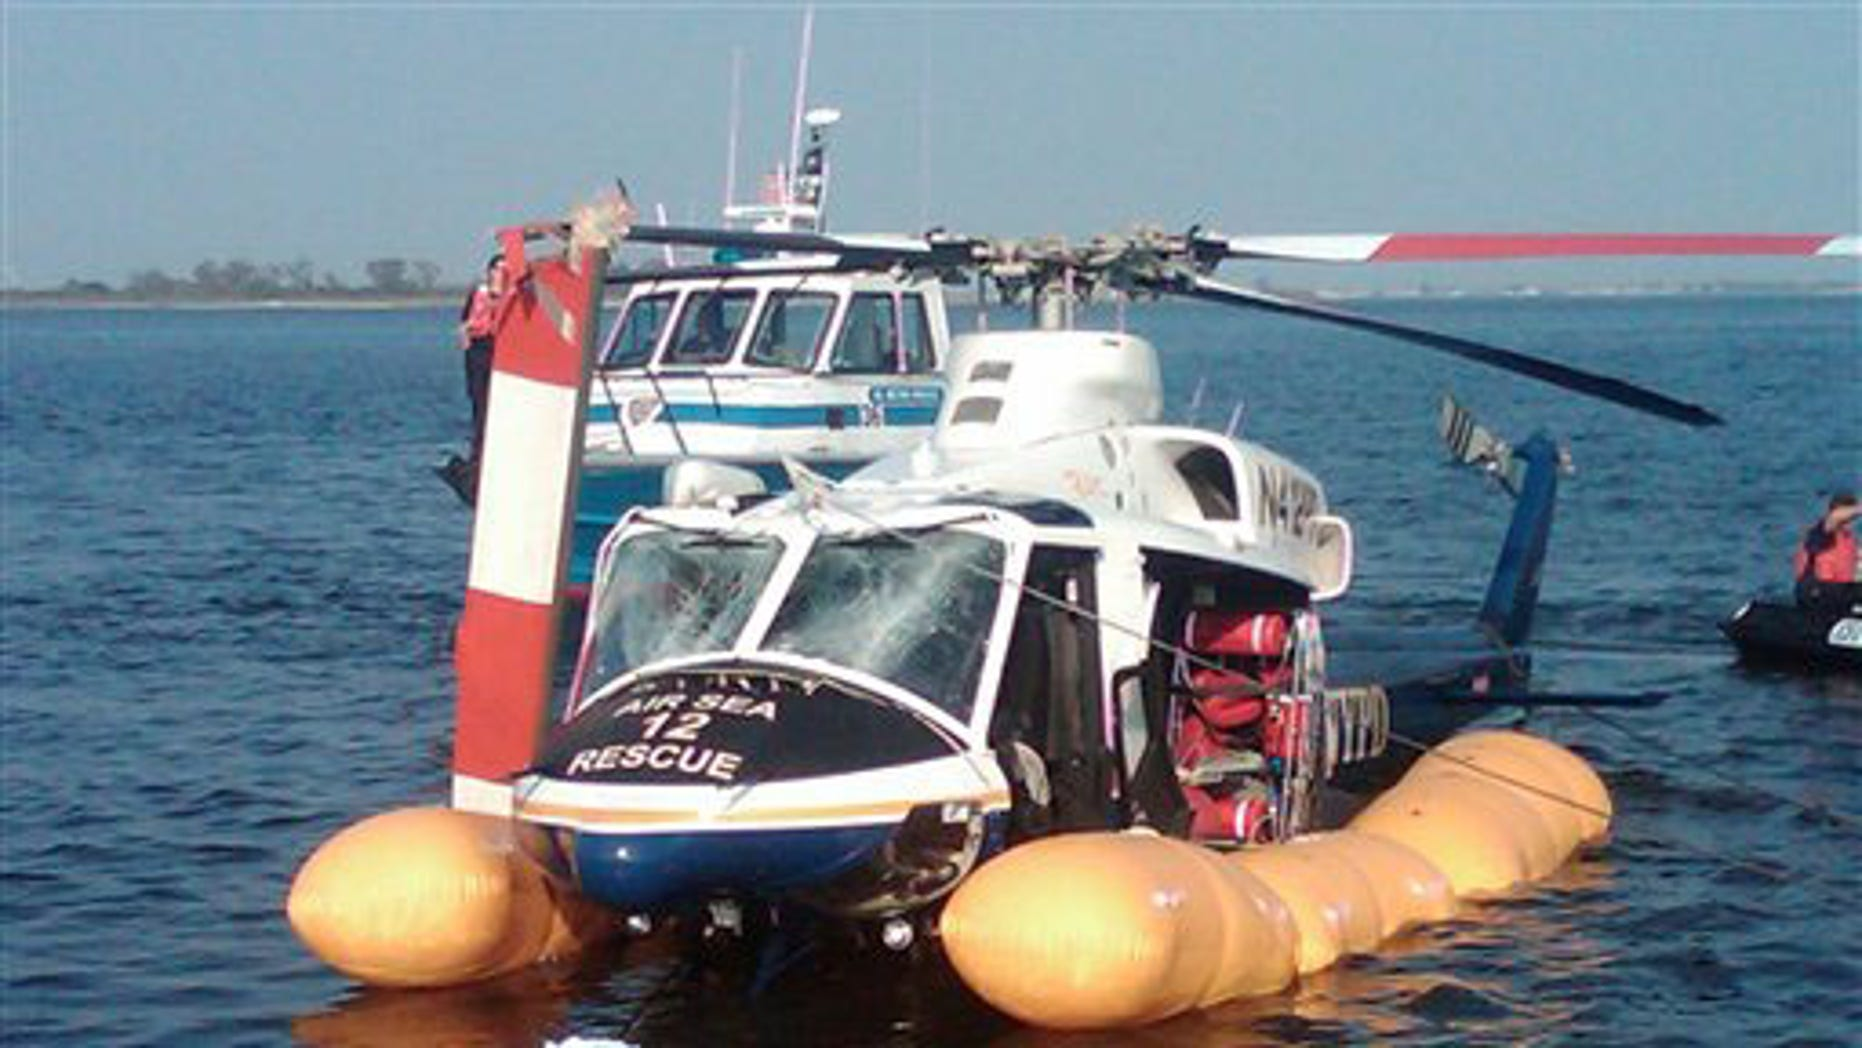 In this photo released by the New York City Police Department, a damaged NYPD helicopter is towed off Jamaica Bay after making an emergency landing, Wednesday, Sept. 22, 2010, in New York. The helicopter sustained a broken rotor and damaged windshield but the three-member flight crew, a trainee and two scuba divers escaped serious harm. One person was treated for a minor injury.